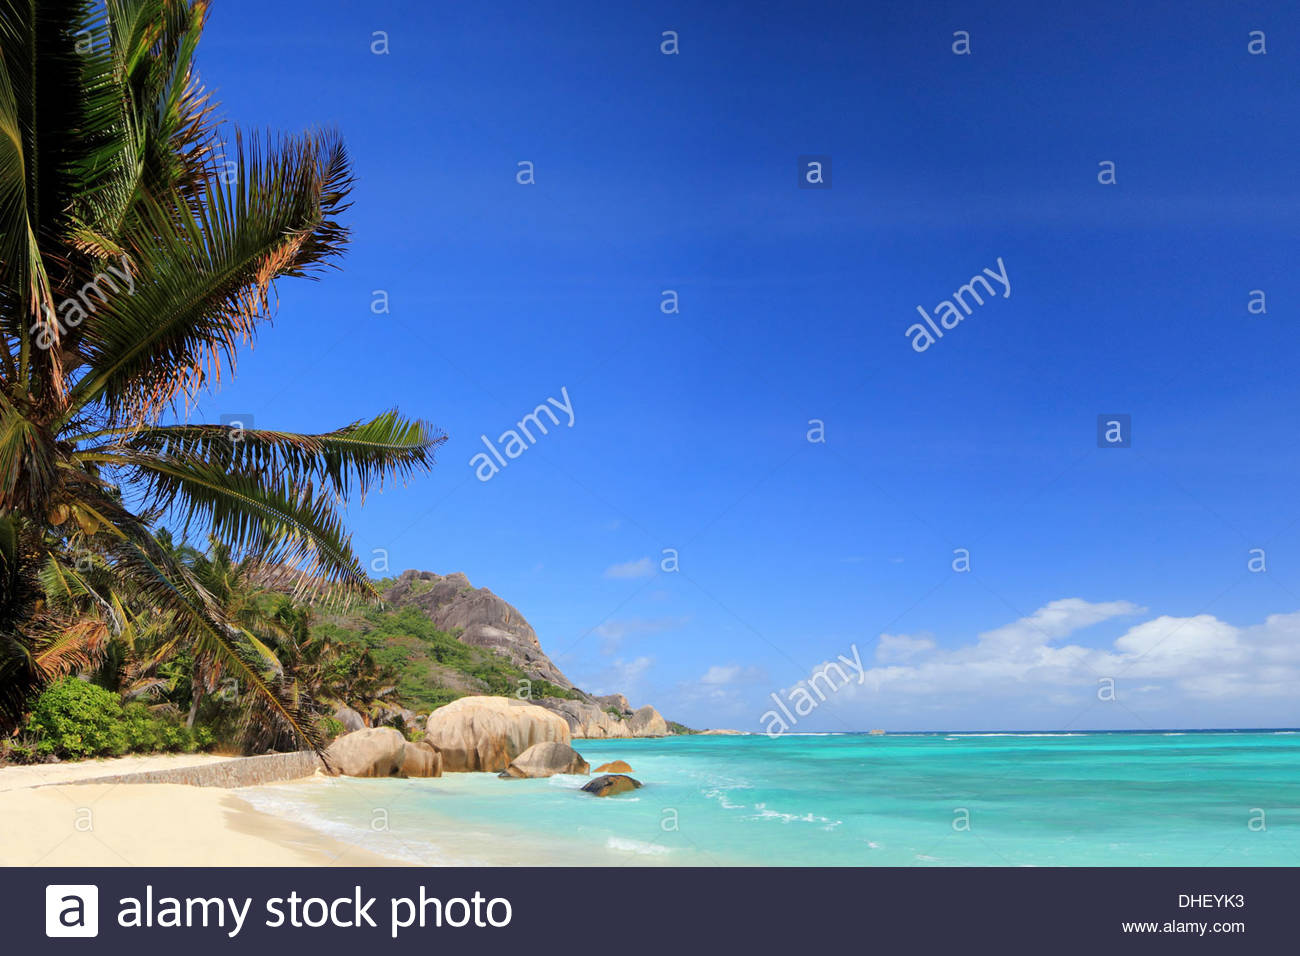 Beach and palm trees, La Digue, Seychelles - Stock Image